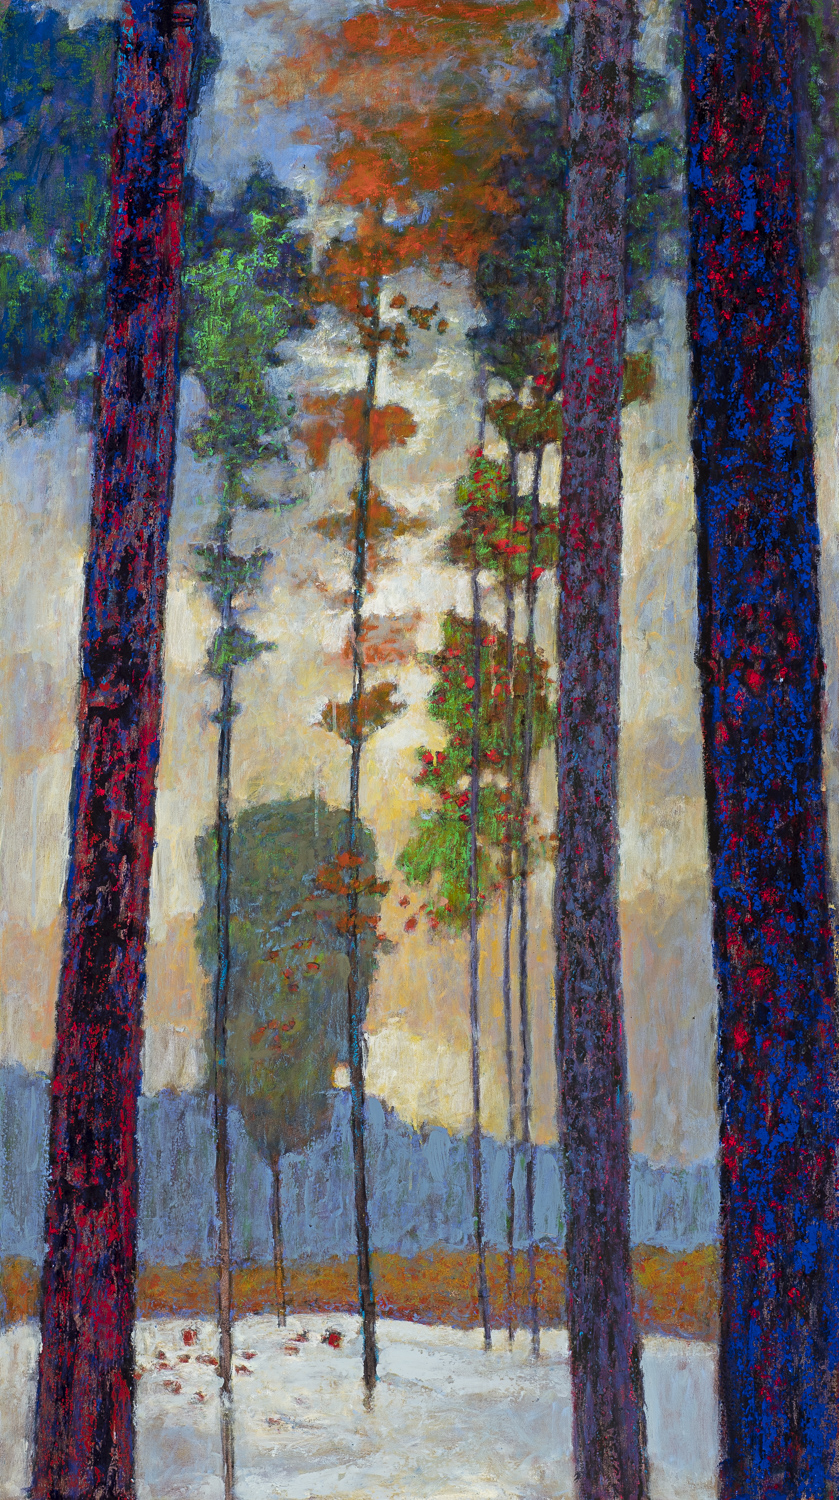 Verticality | oil on canvas | 65 x 36"